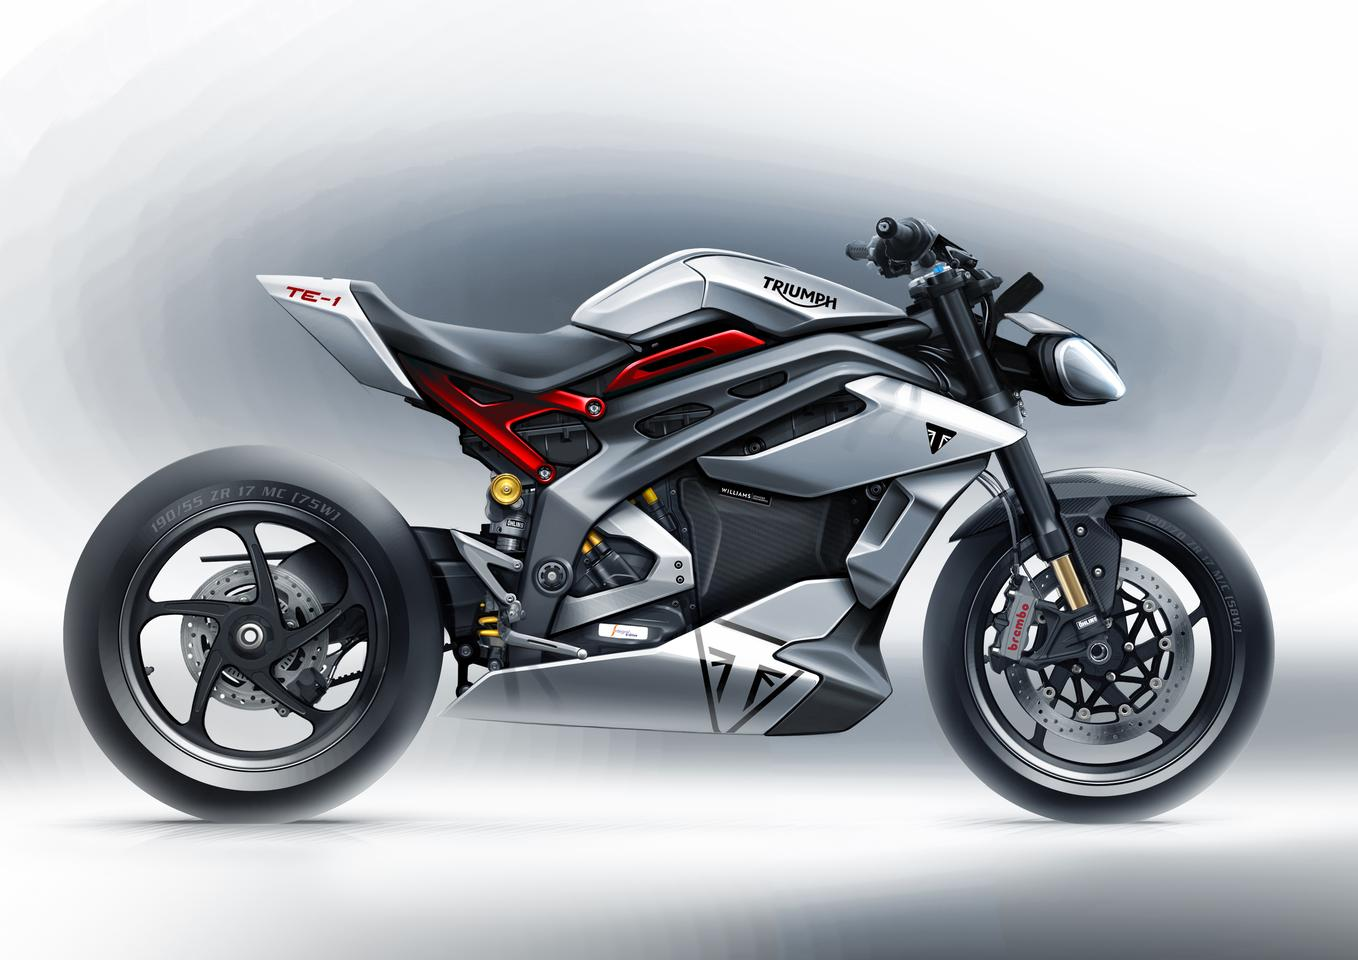 Triumph's upcoming TE-1 prototype will be a wild, 174-horsepower electric Speed Triple lookalike with a groundbreaking powertrain developed in conjunction with Williams Advanced Engineering